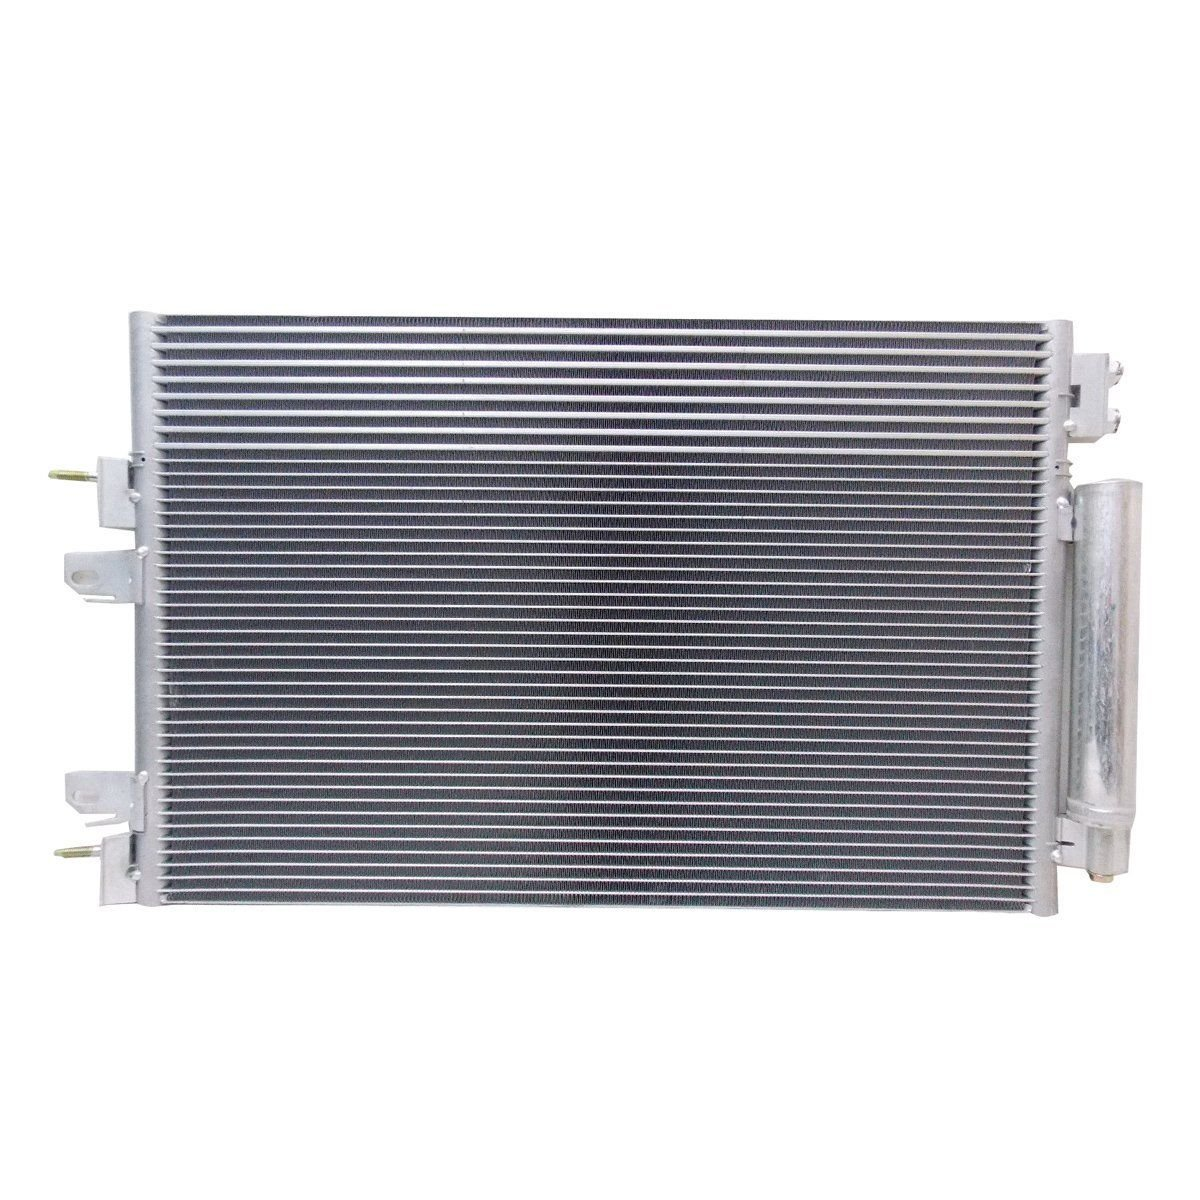 ECCPP AC A/C Condenser 3982 for 2007-2016 Jeep Patriot 2005 2006 Jeep Compass 2012 Dodge Caliber 2.0L 2.4L by ECCPP